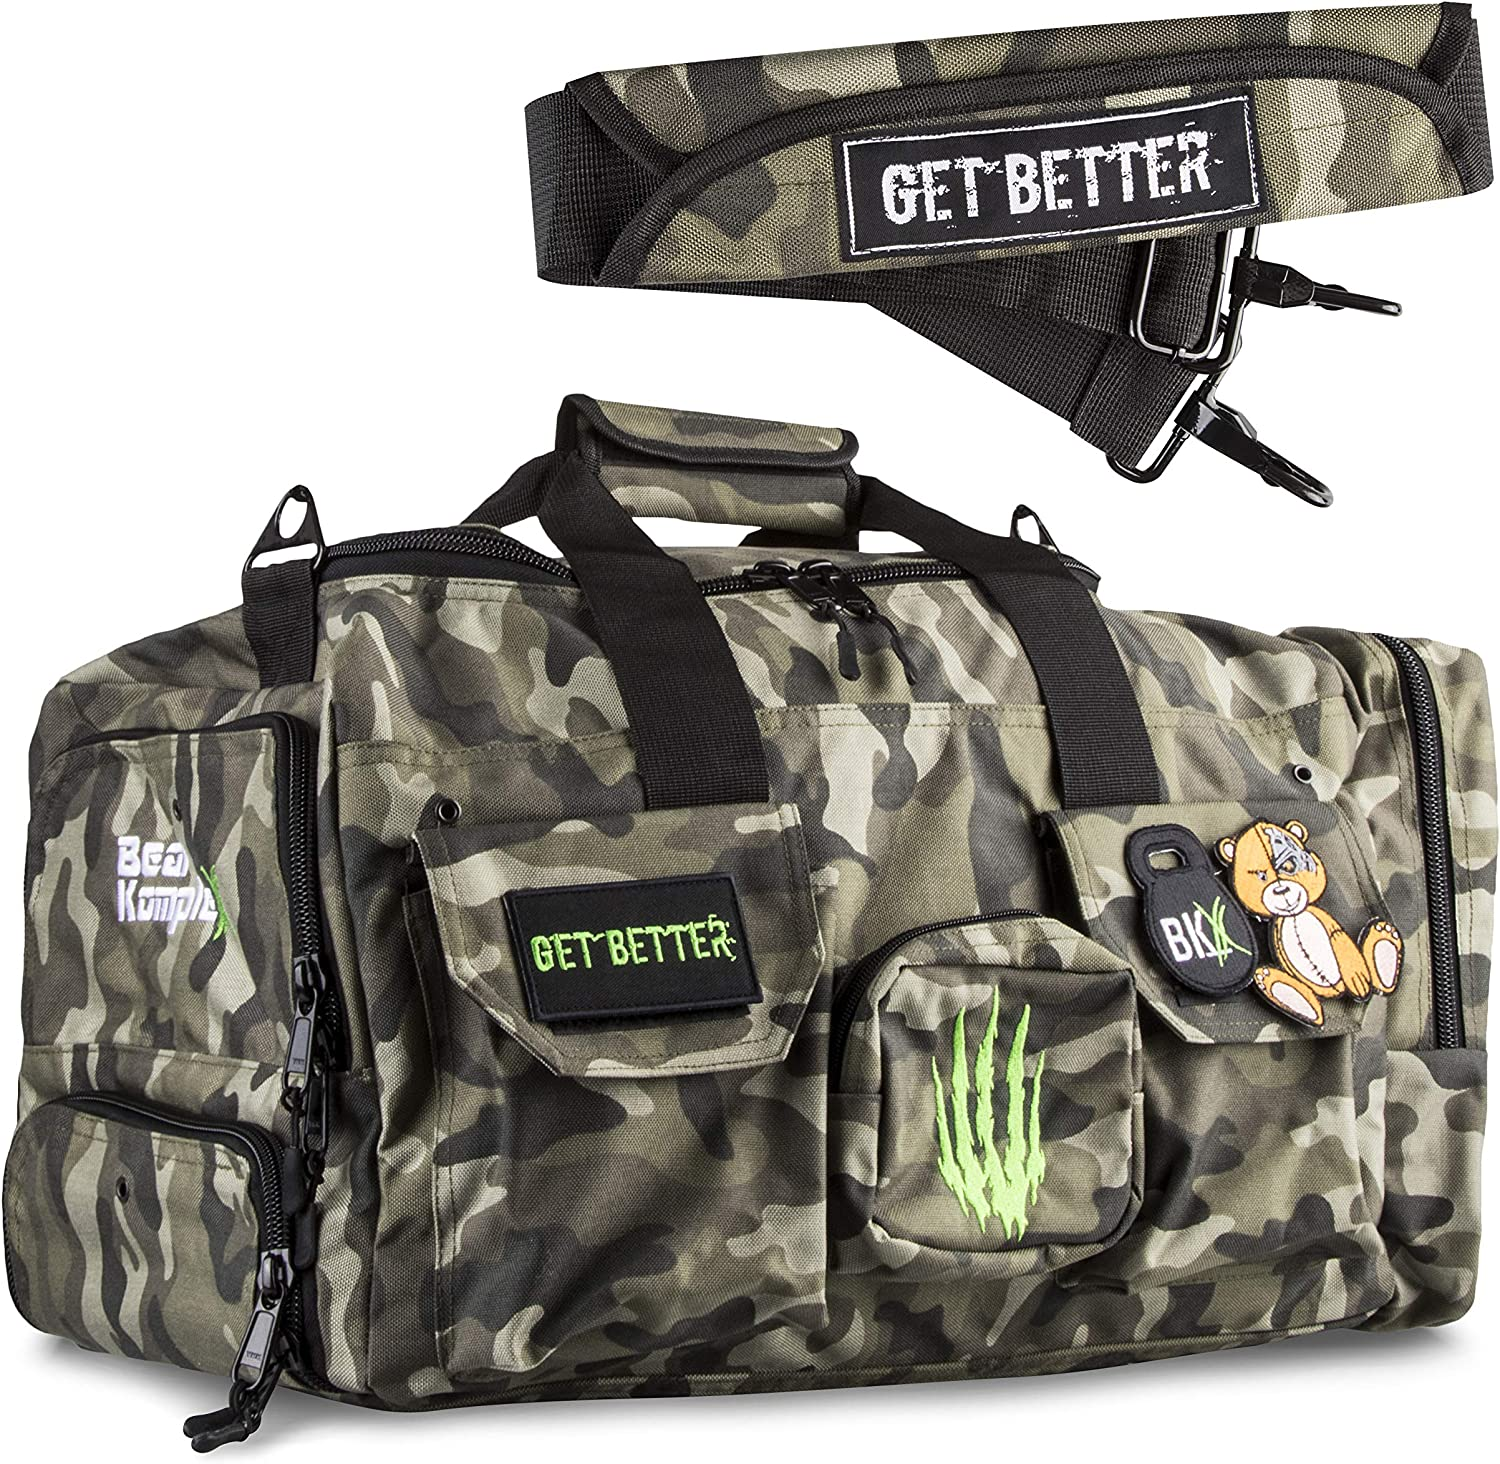 67% OFF of fixed price Bear KompleX Gym Bag Tactical Excellent Hunting for an Rucksack Fitness